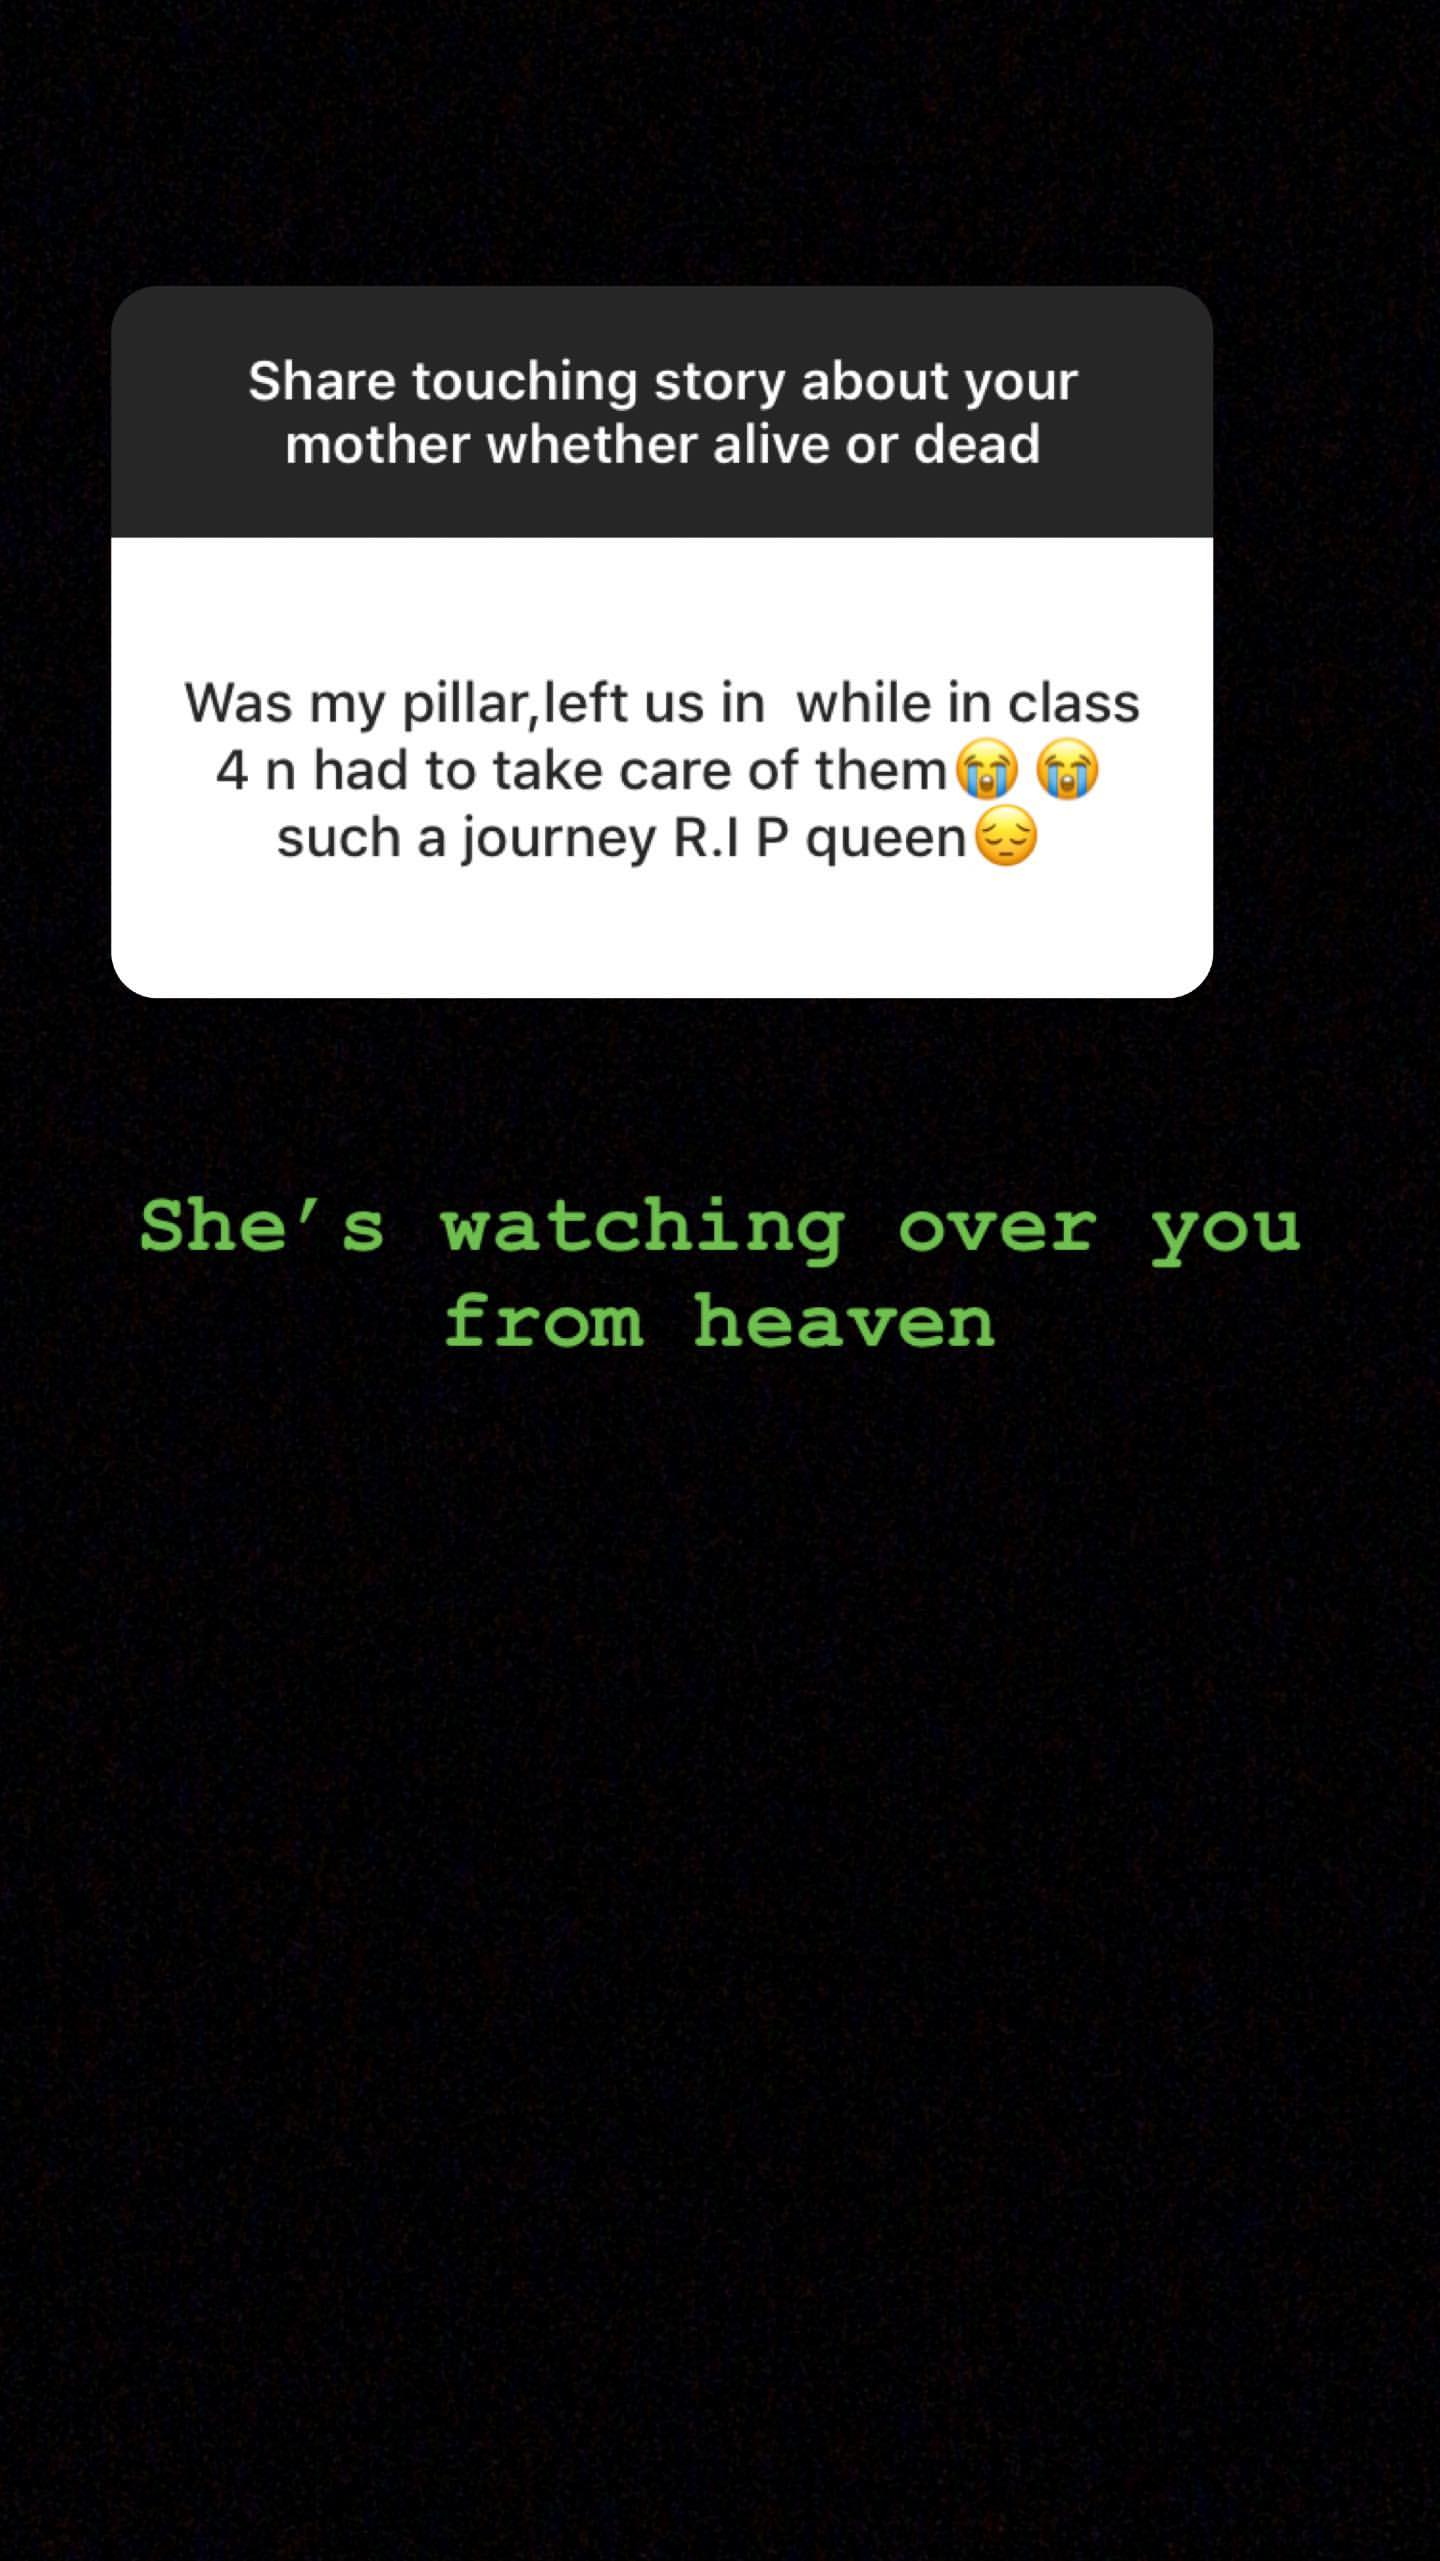 58468624 114581959750976 7845800025392135196 n - Tear-jerking! Mpasho fans break down sharing touching stories about their mothers